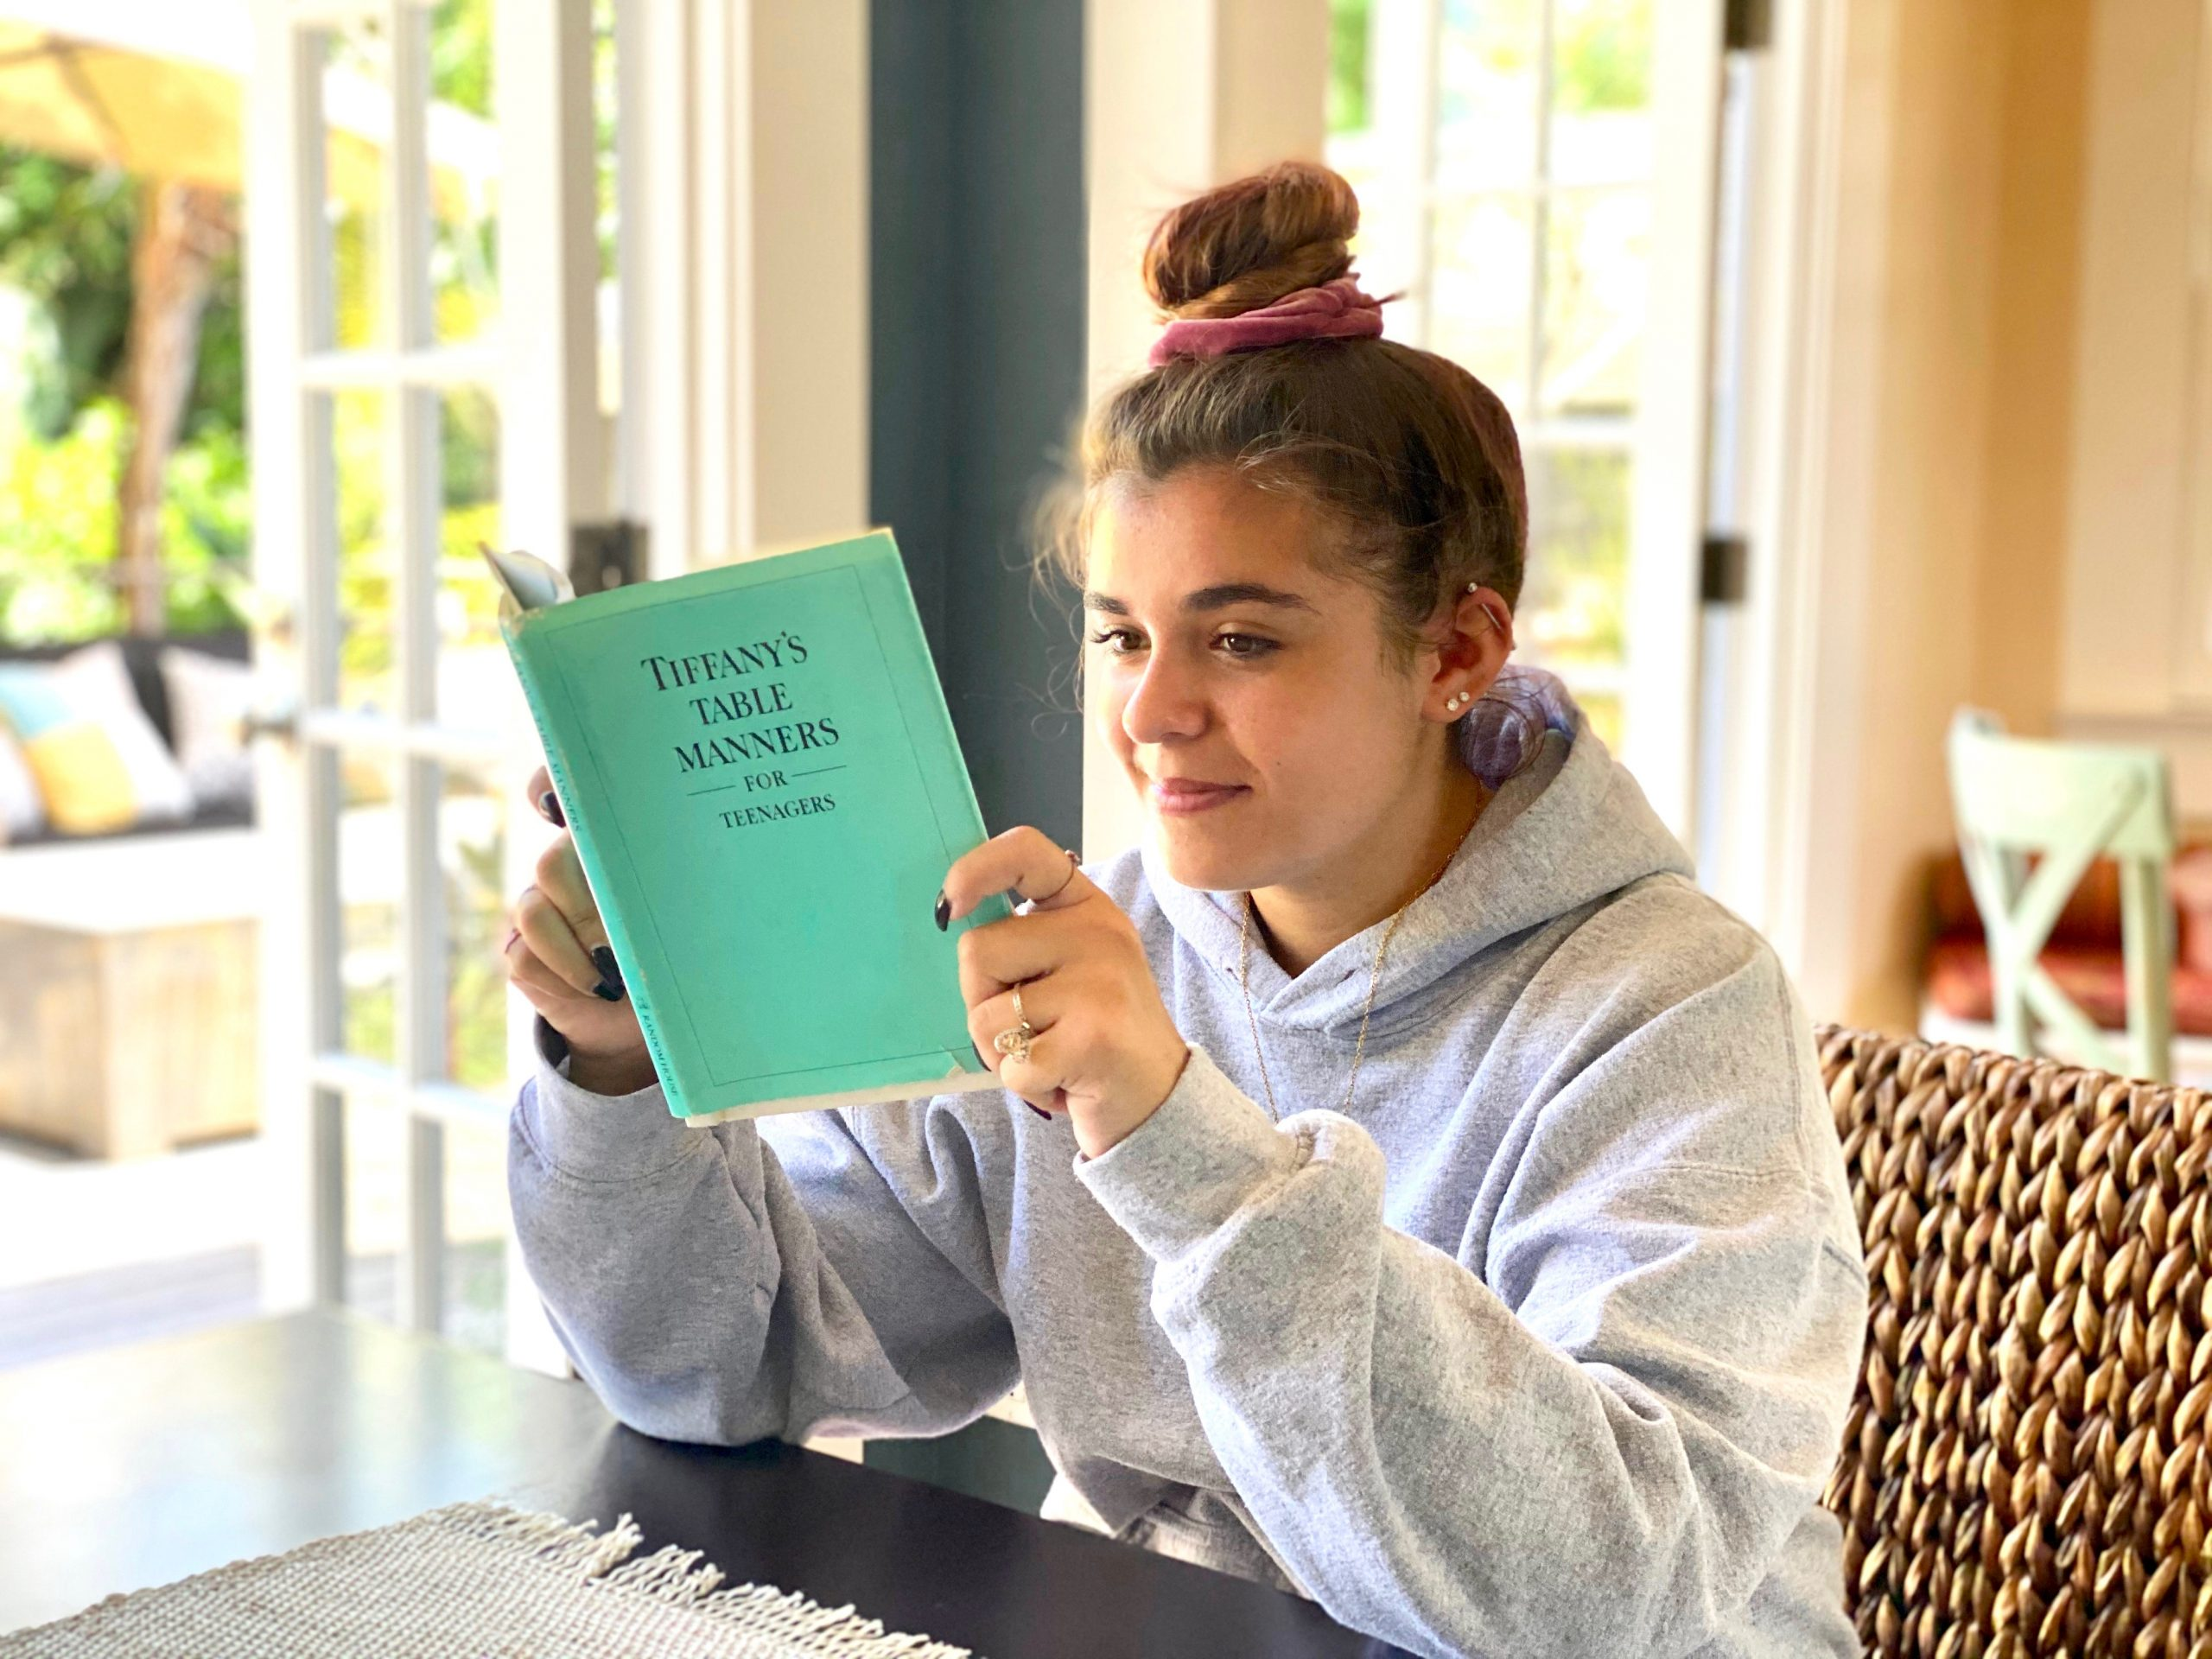 Girl reads Tiffany's Table Manners for Teenagers while sitting at dining room table at home